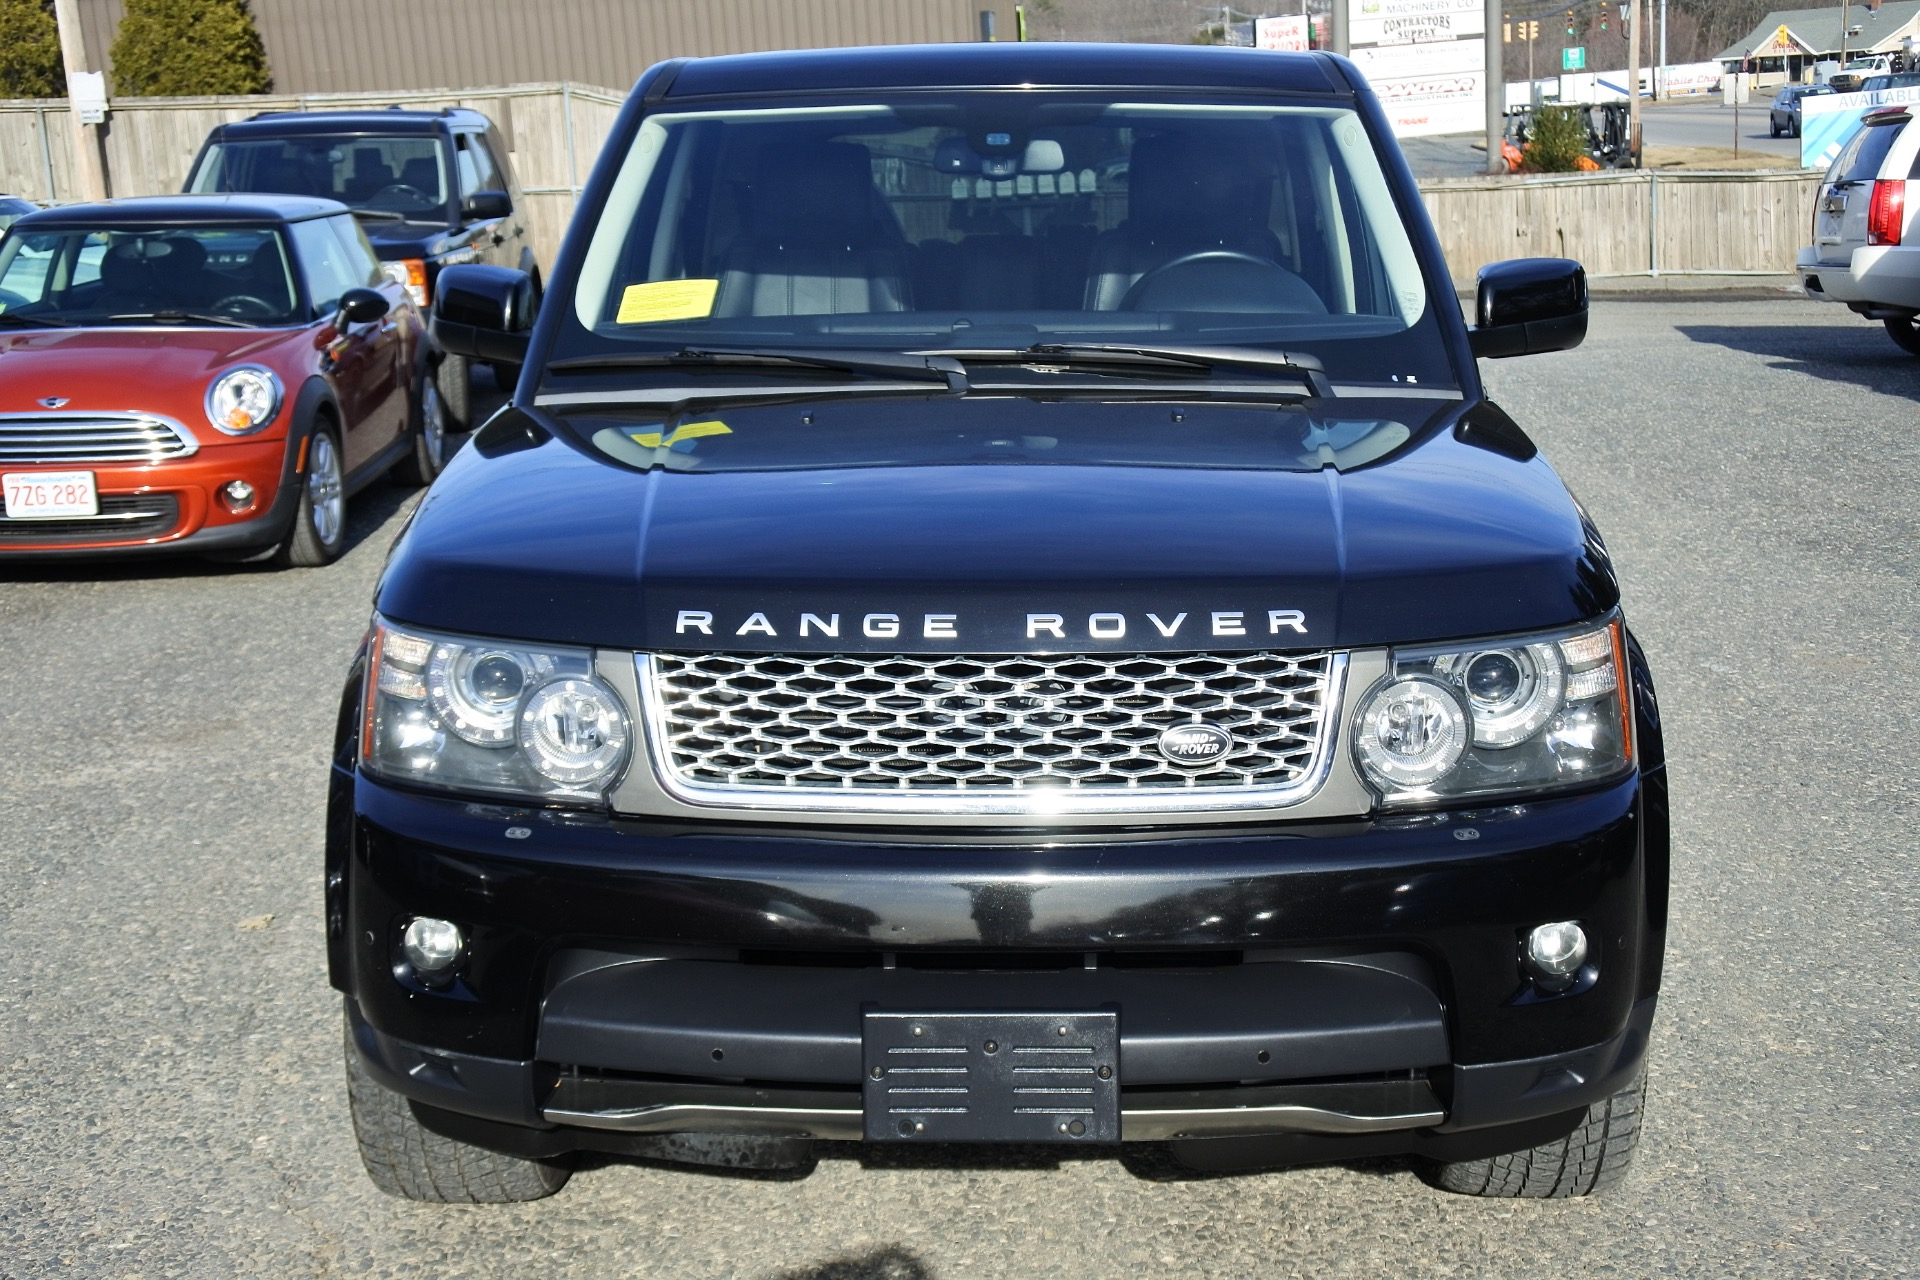 Used 2010 Land Rover Range Rover Sport Supercharged Used 2010 Land Rover Range Rover Sport Supercharged for sale  at Metro West Motorcars LLC in Shrewsbury MA 8